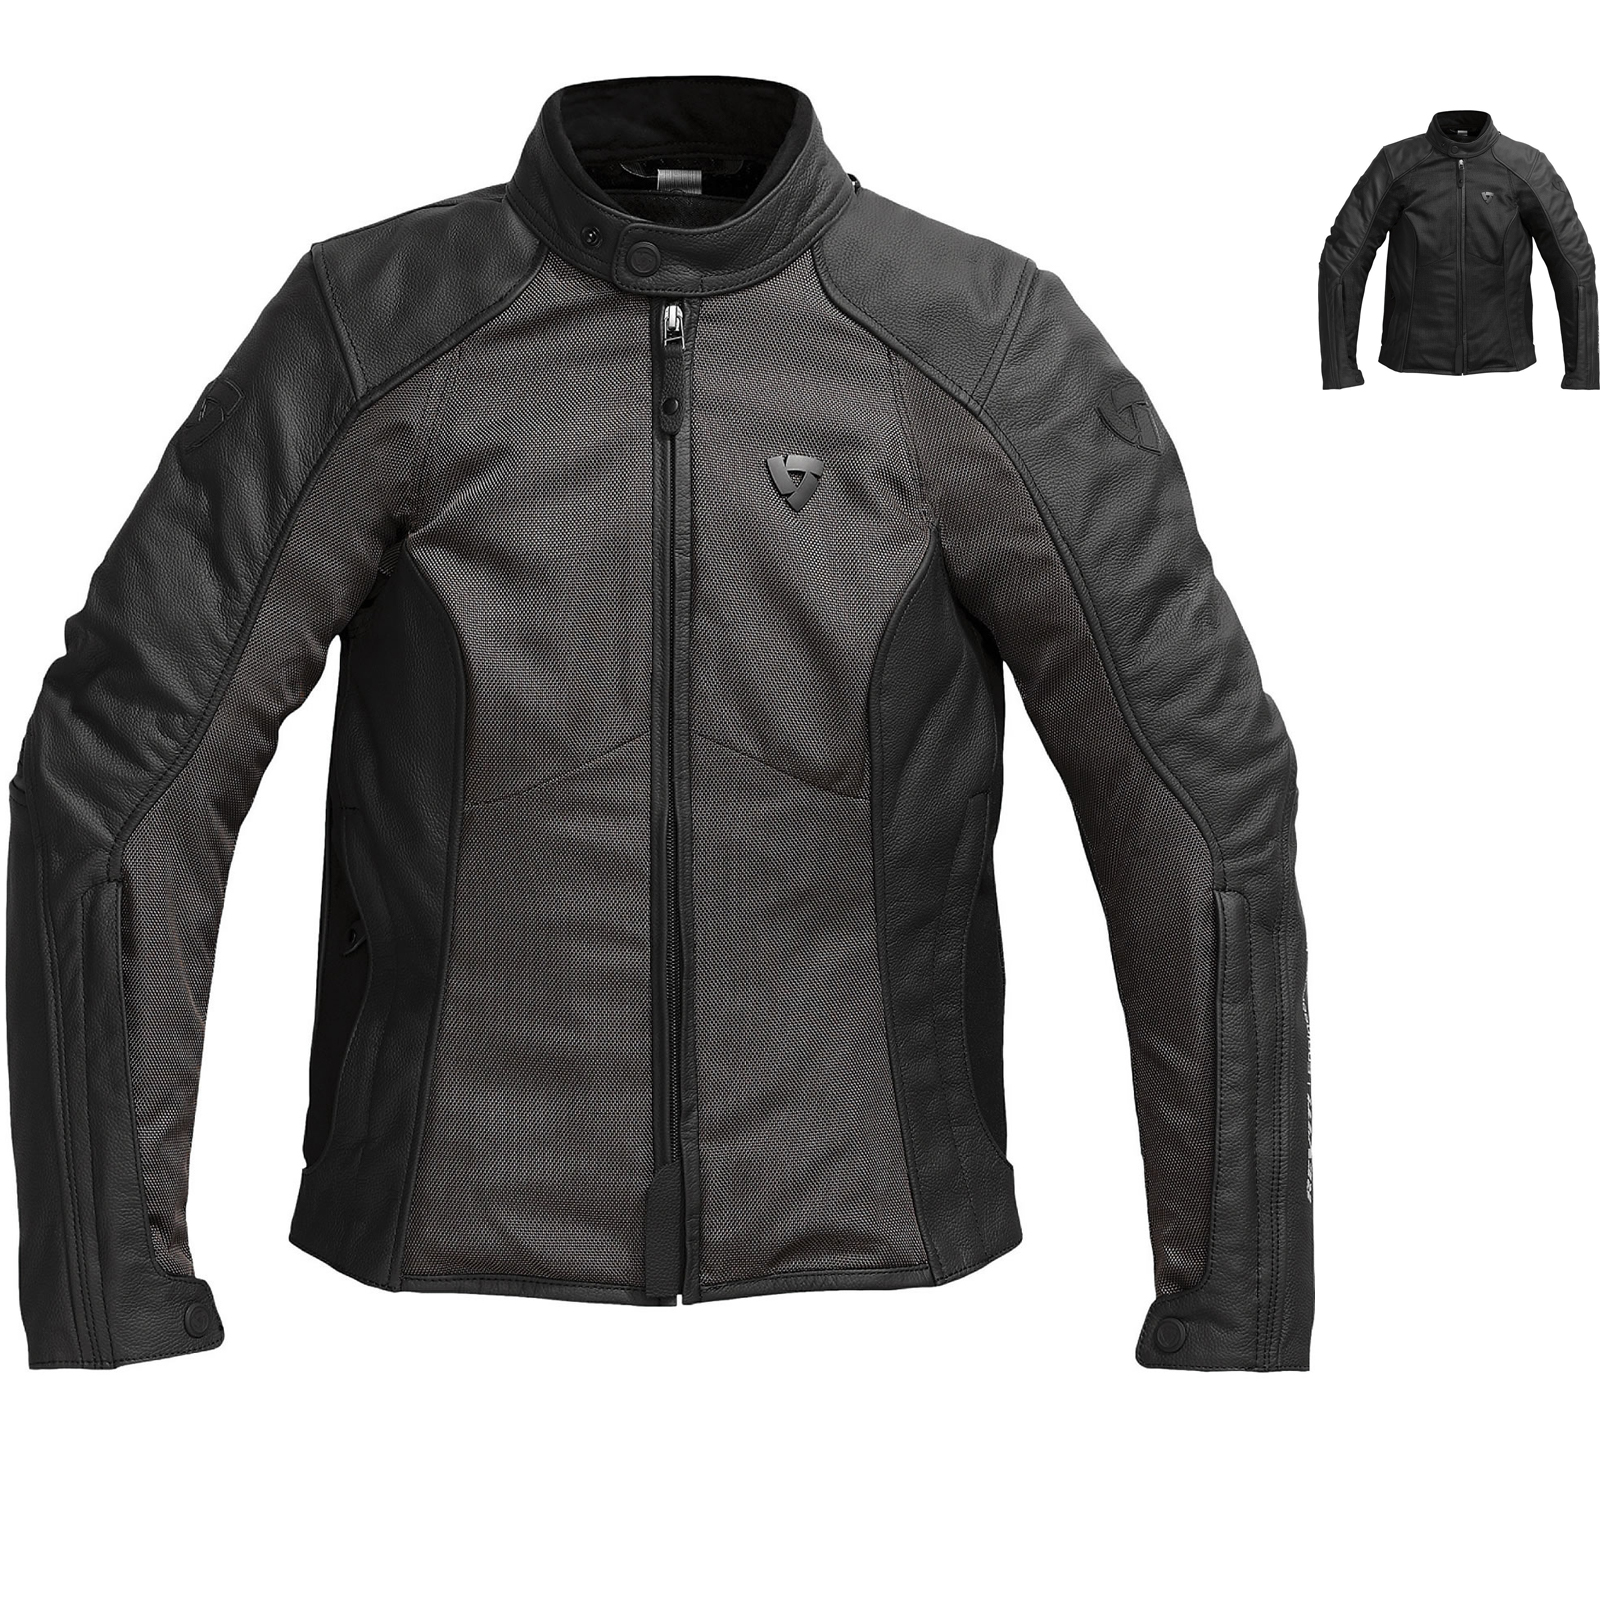 rev it ignition 2 ladies leather motorcycle jacket. Black Bedroom Furniture Sets. Home Design Ideas